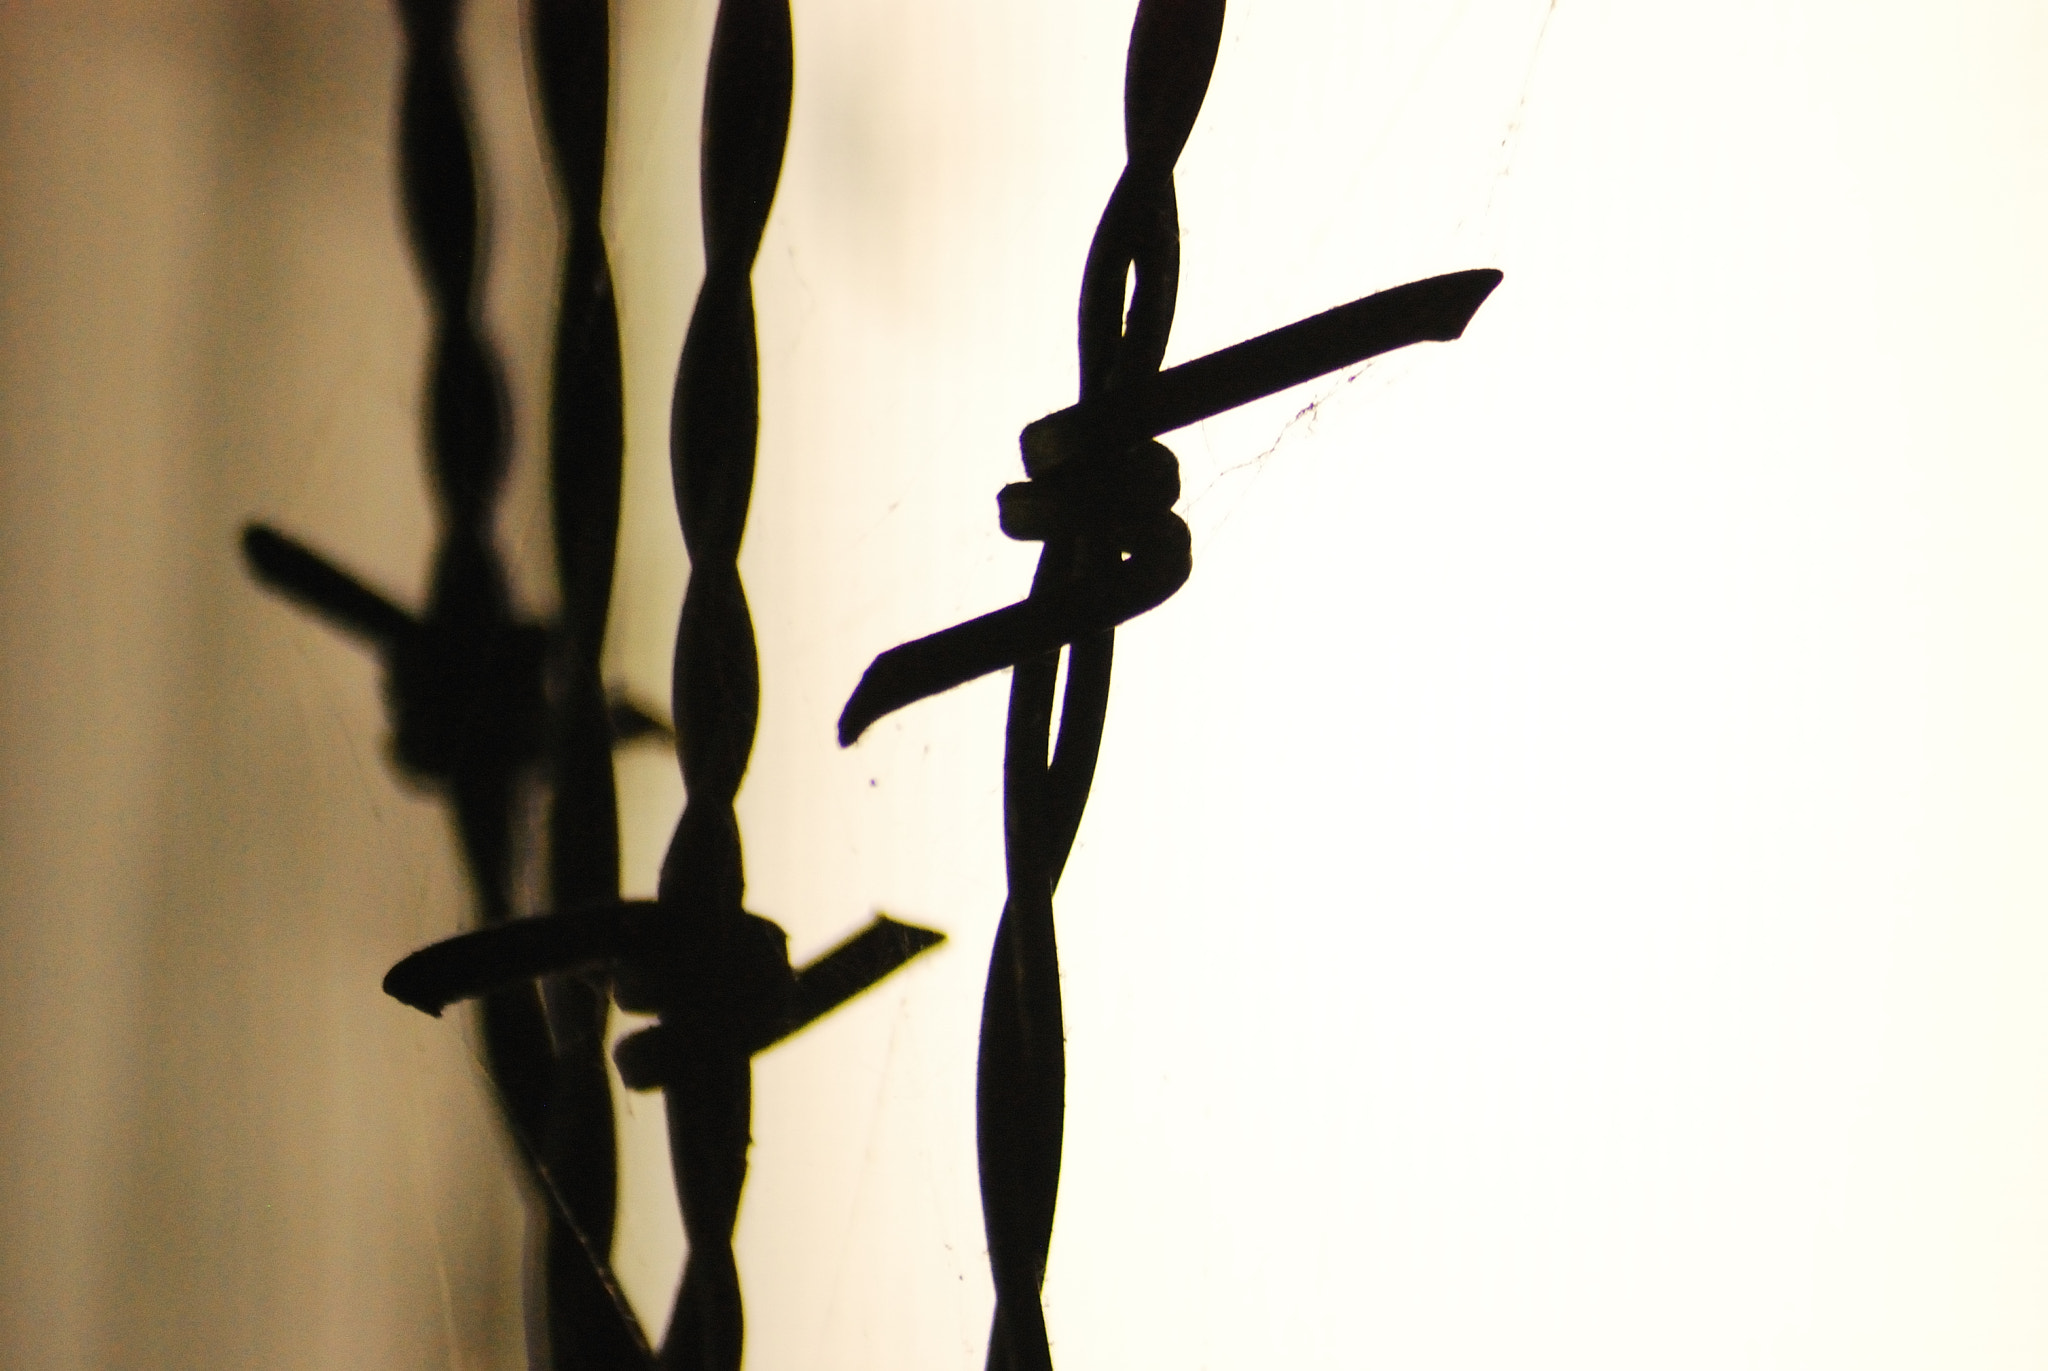 Photograph Barbwire by Anastasia Hill on 500px